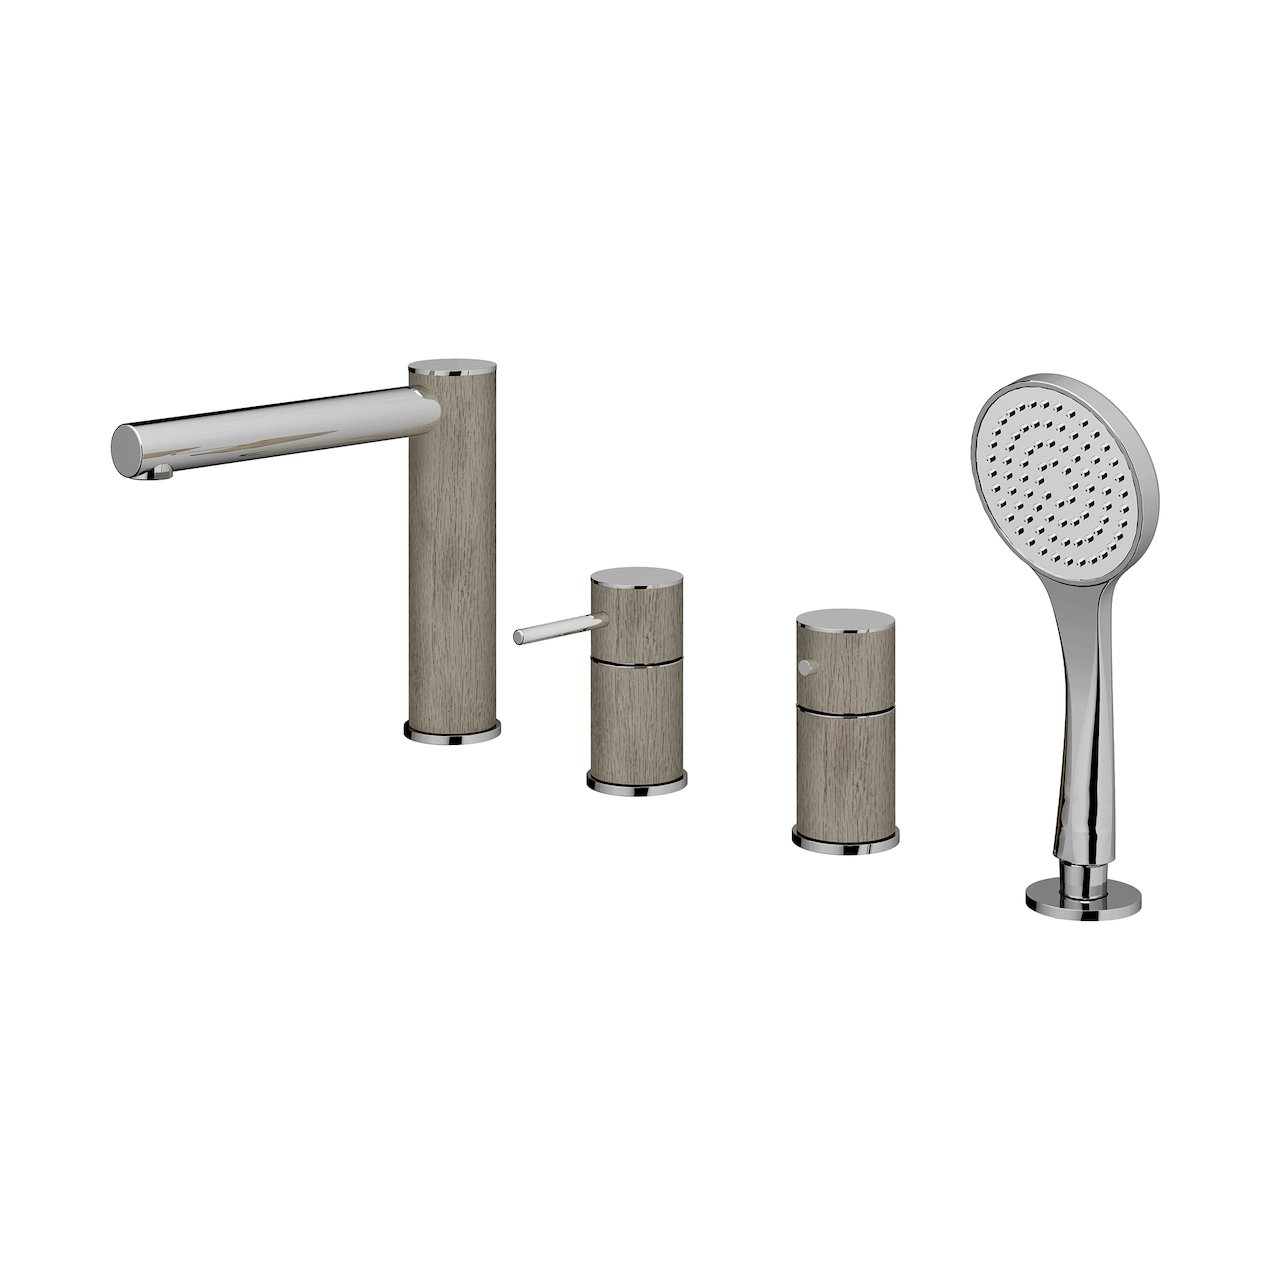 4-way Deck-Mounted Bathtub Tap Rovere